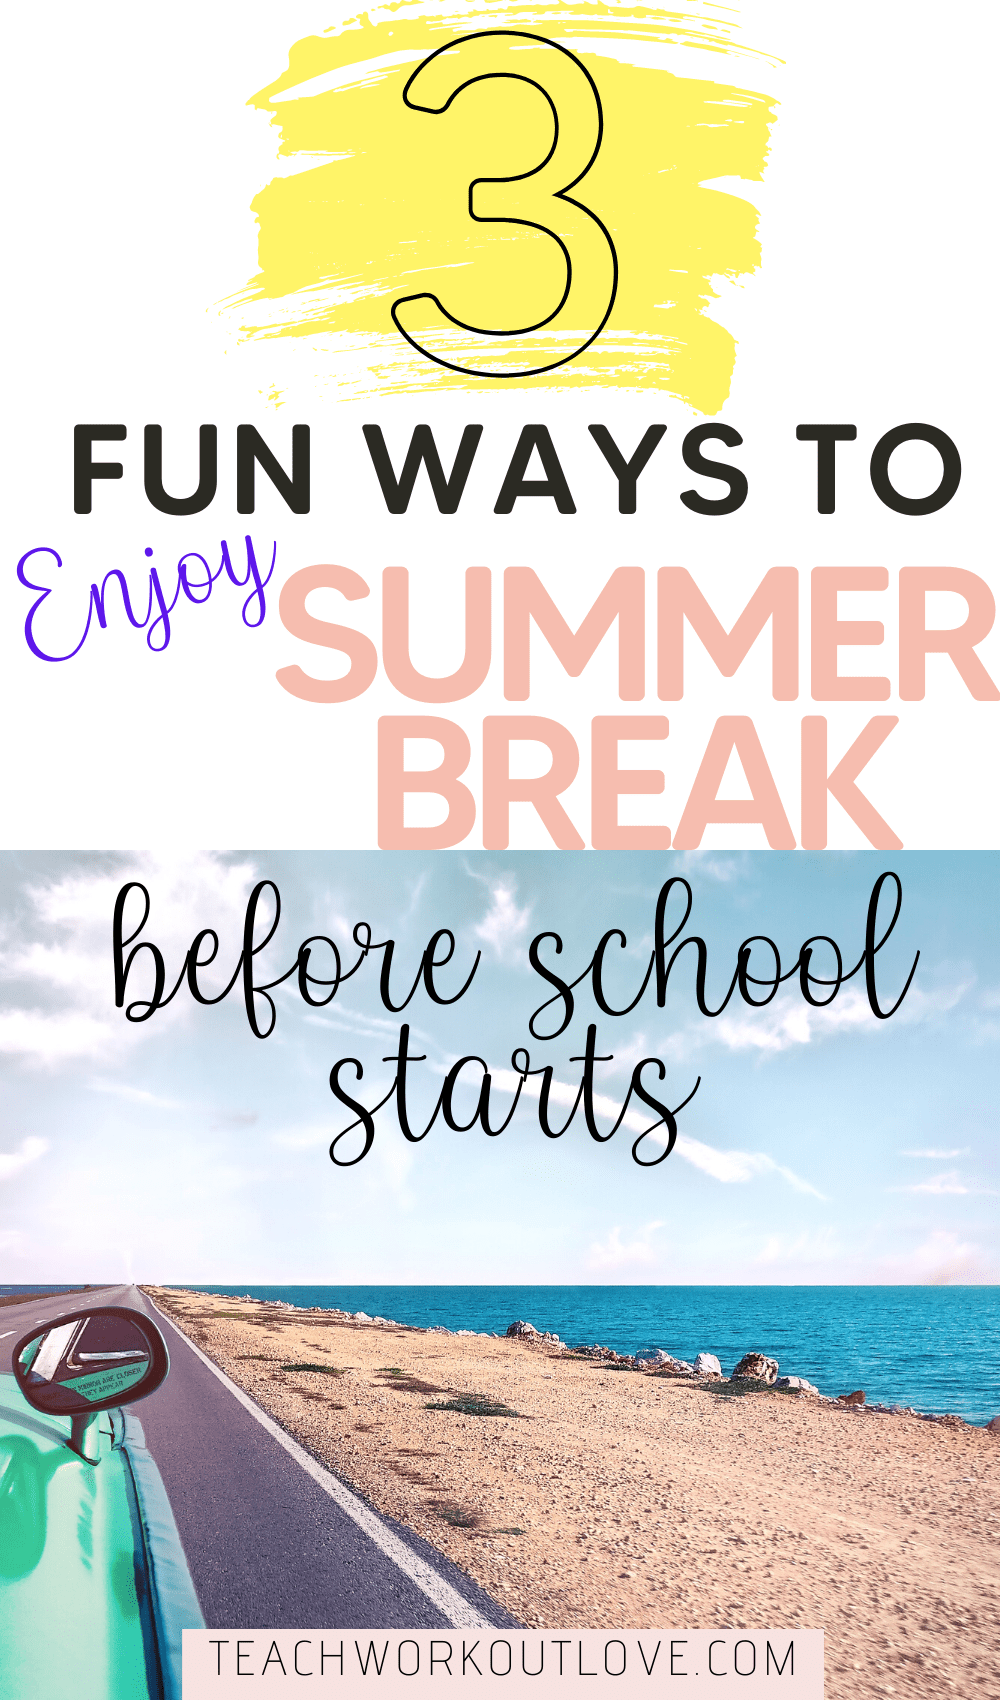 The best way to enjoy the end of summer is finding fun ways to spend with the family. Here's 3 fun ways to enjoy the summer break before back to school.